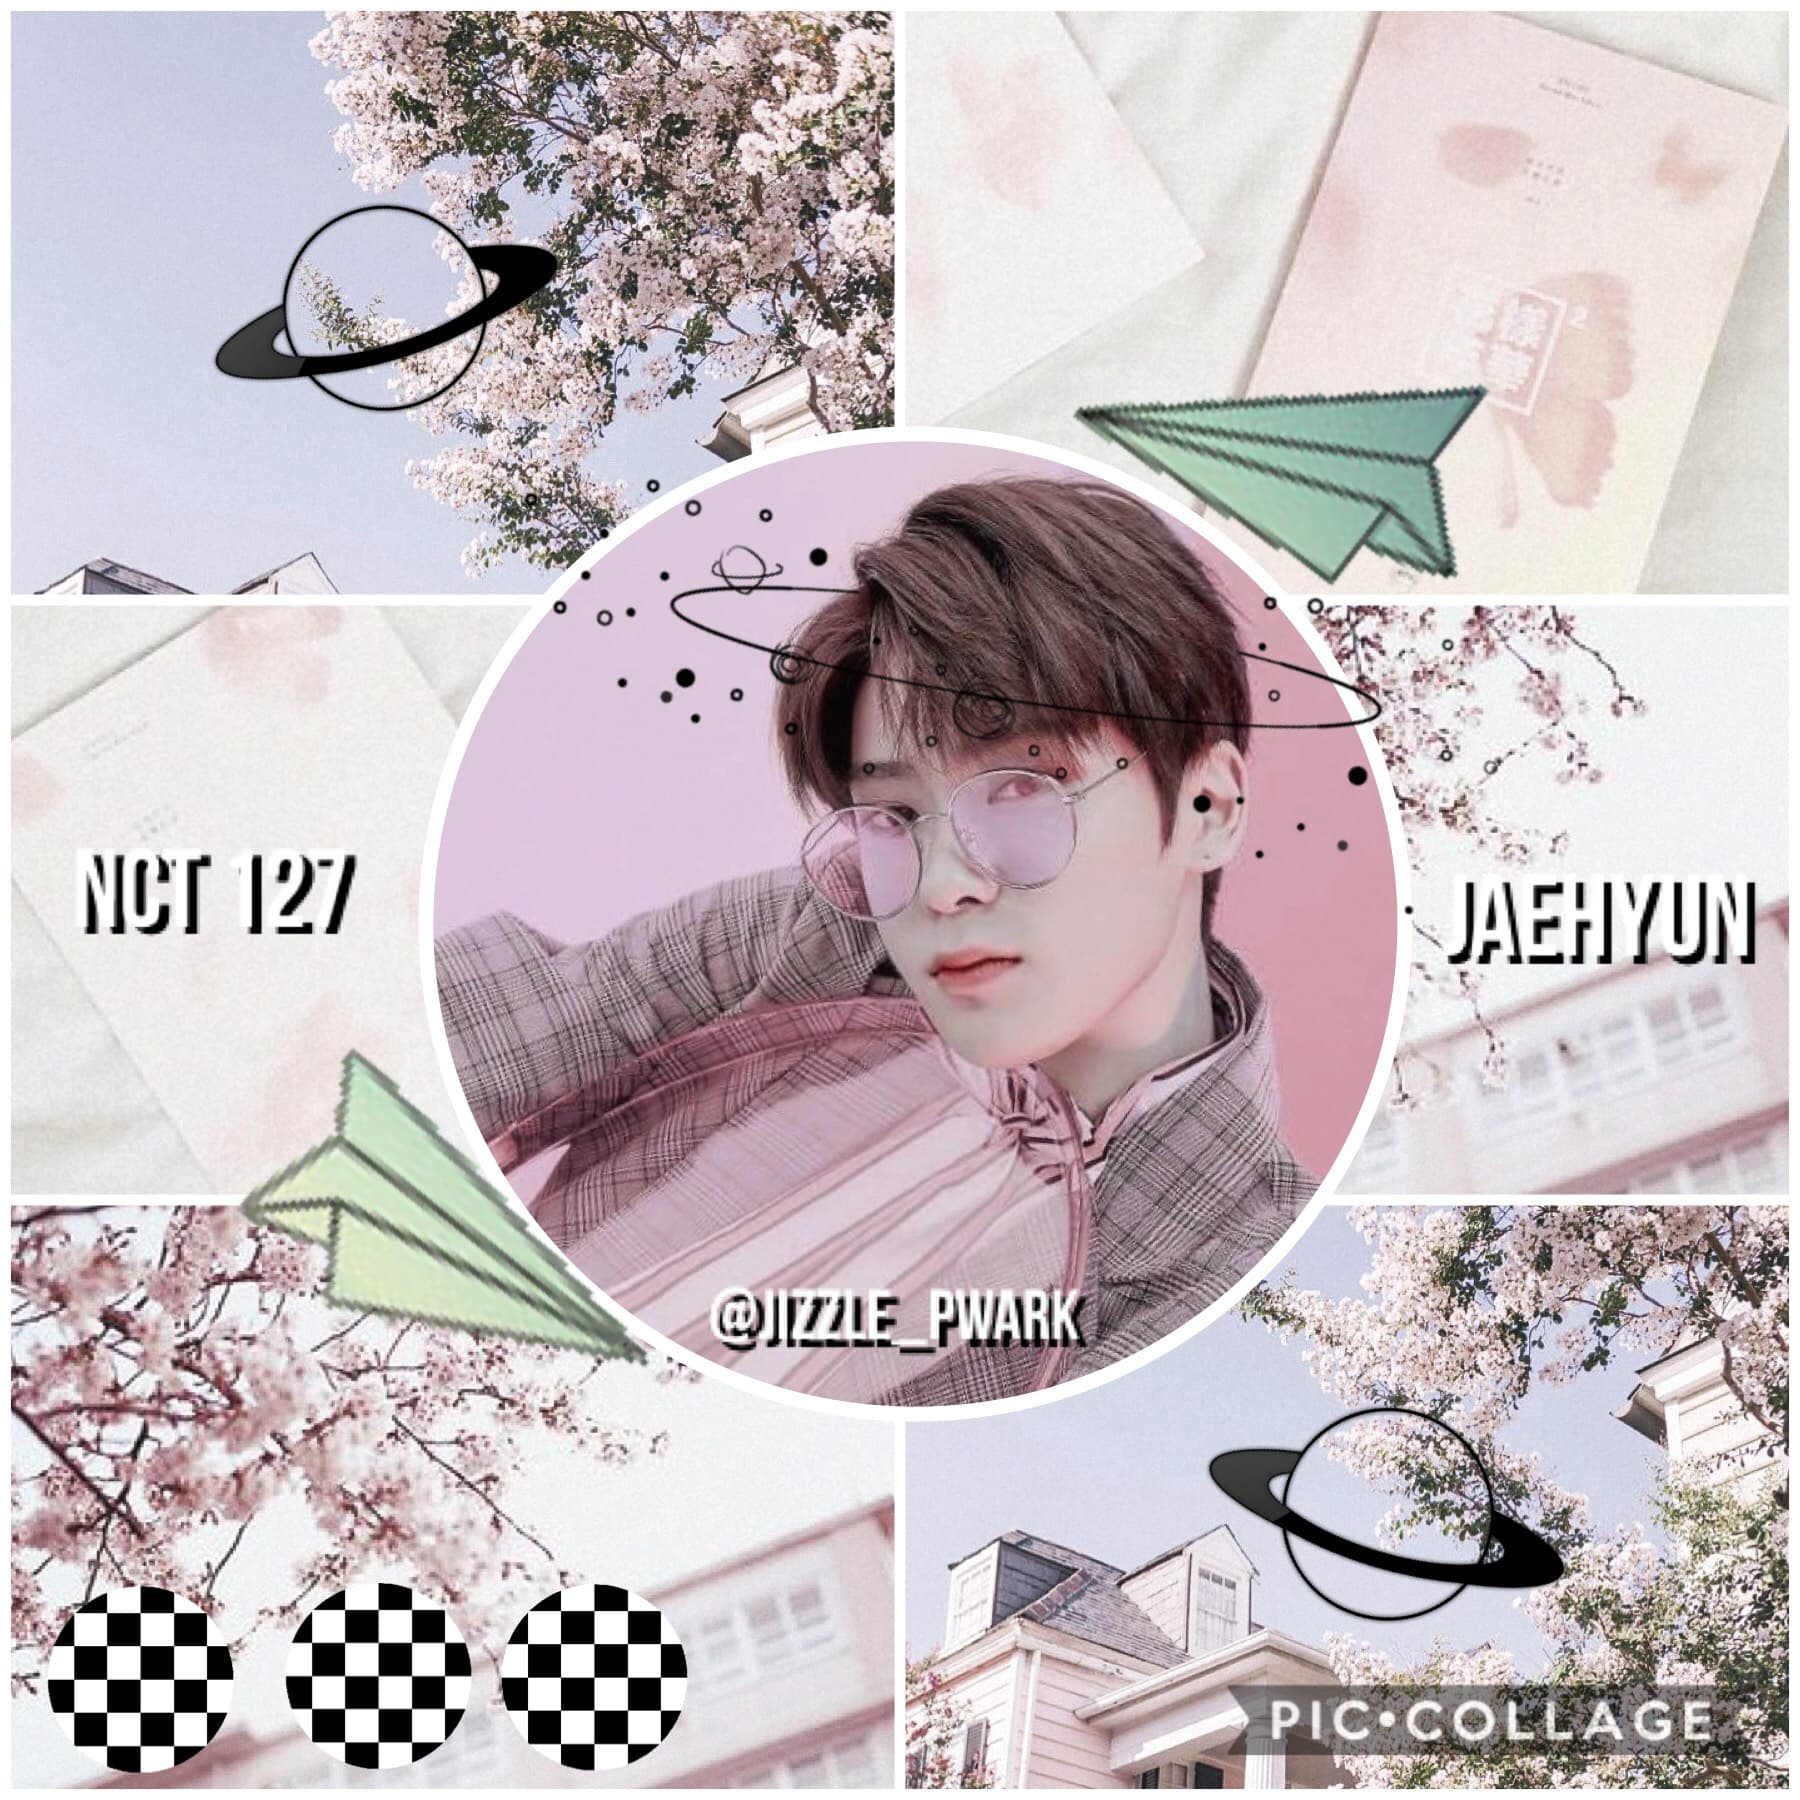 •Continuation of NCT 127 editing challenge• Inspired by the amazing and talented: @Whoop_Whoop127!!! Man.....I don't think that I'll ever be as aesthetically pleasing as her 😂😂 you are so talented whoop-di-doop! 💜💜